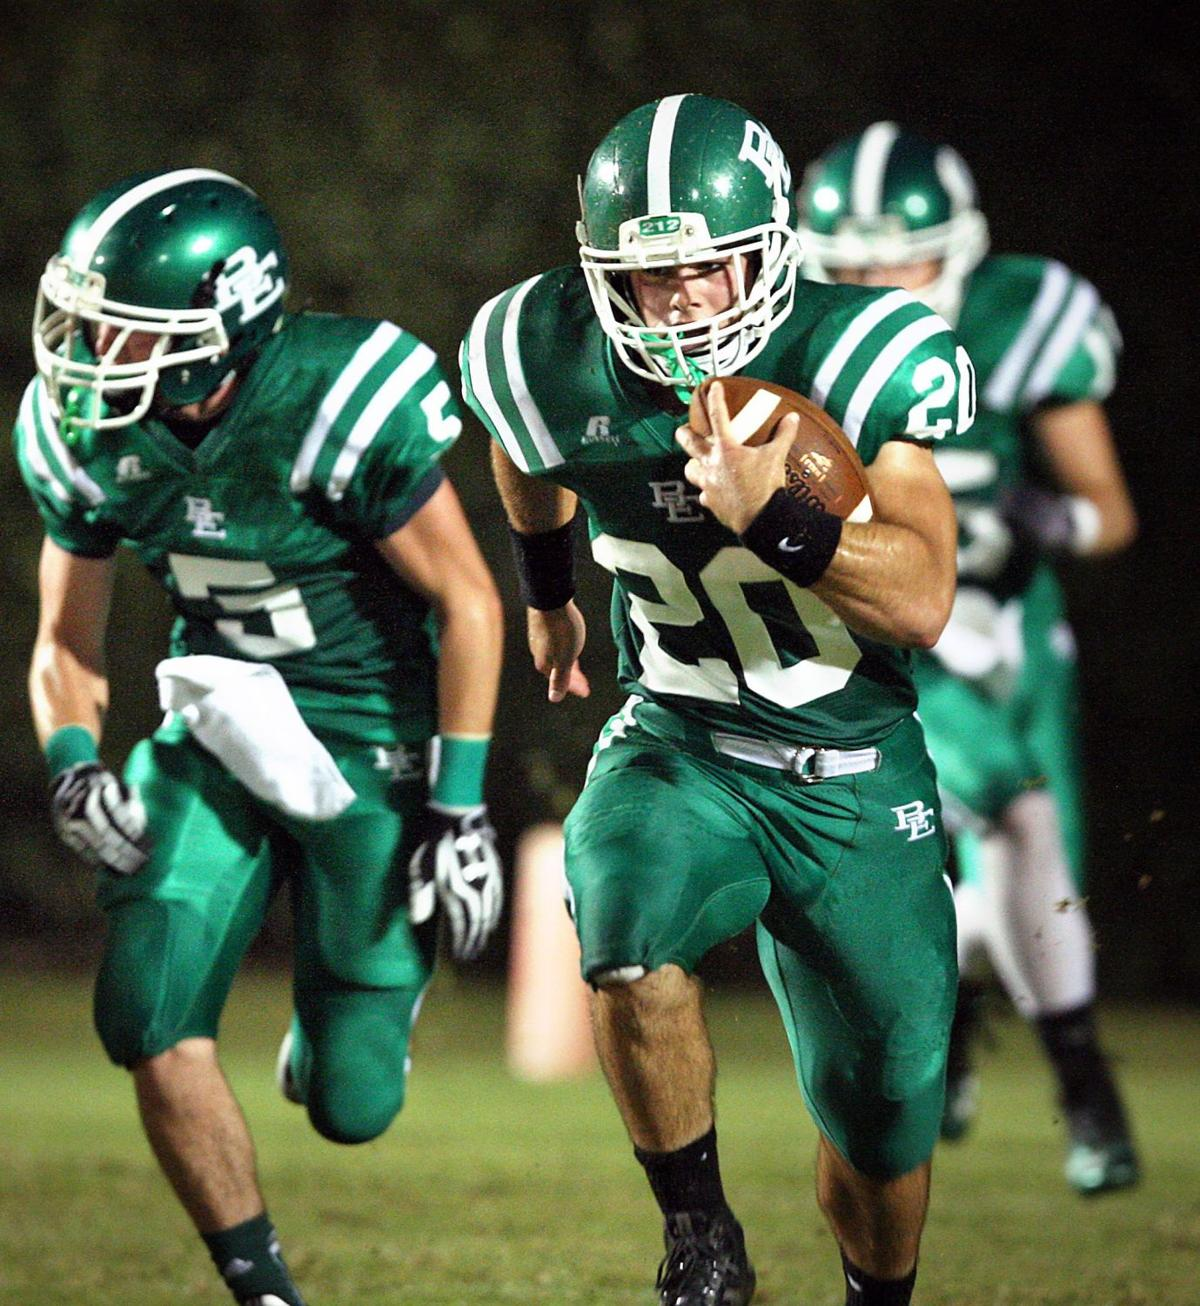 Prep Zone blog covered Friday night high school football